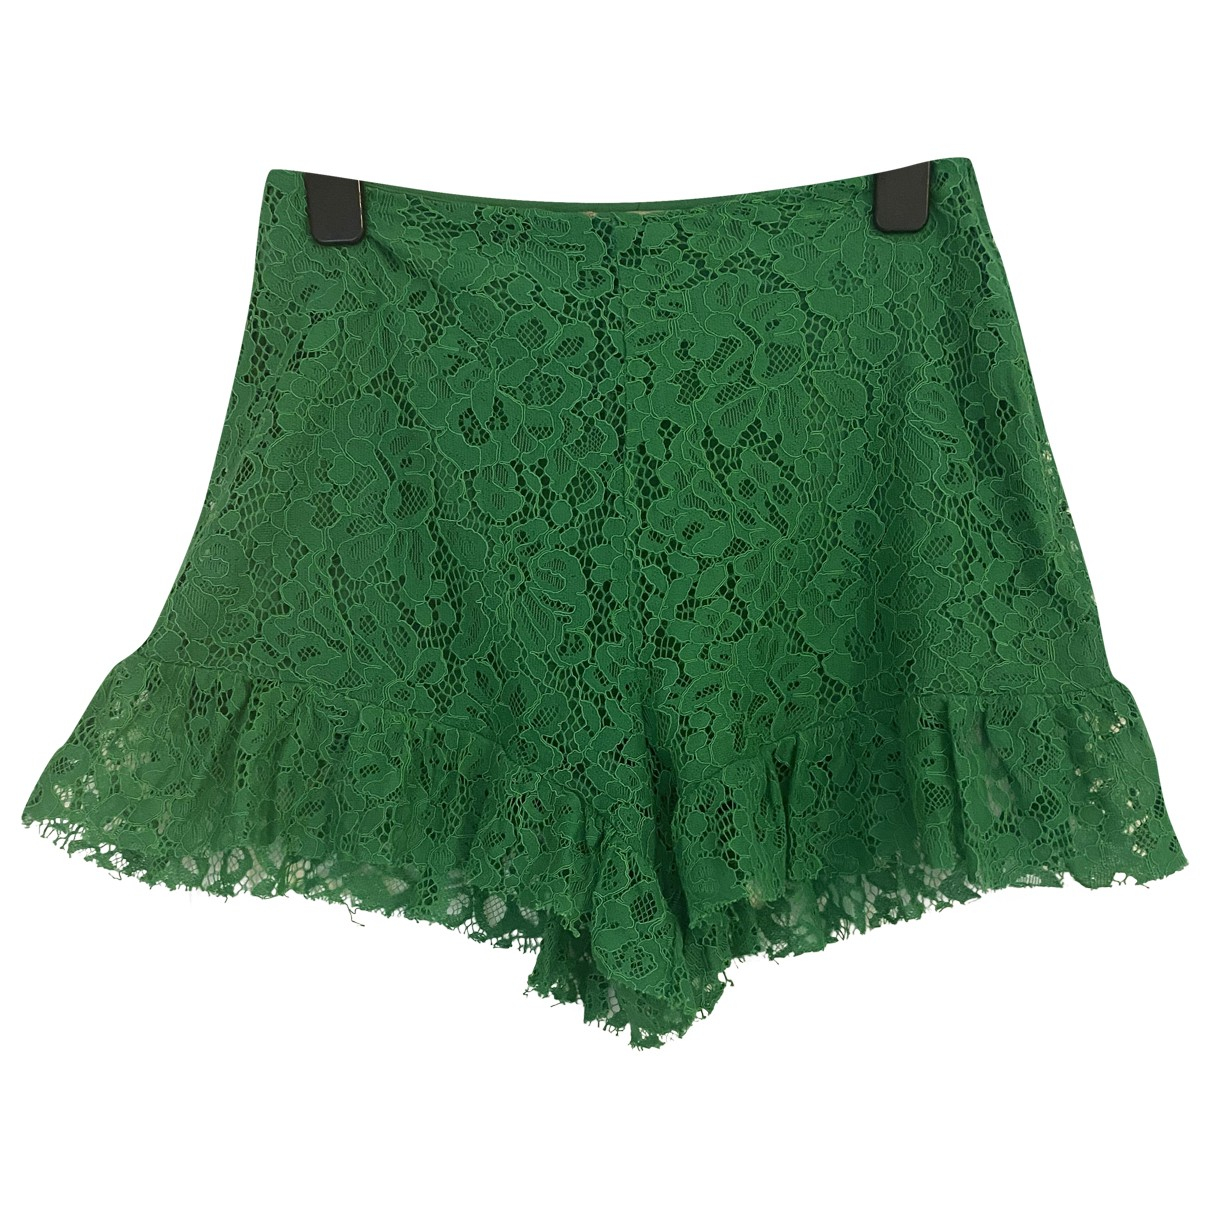 Zara \N Green Shorts for Women S International